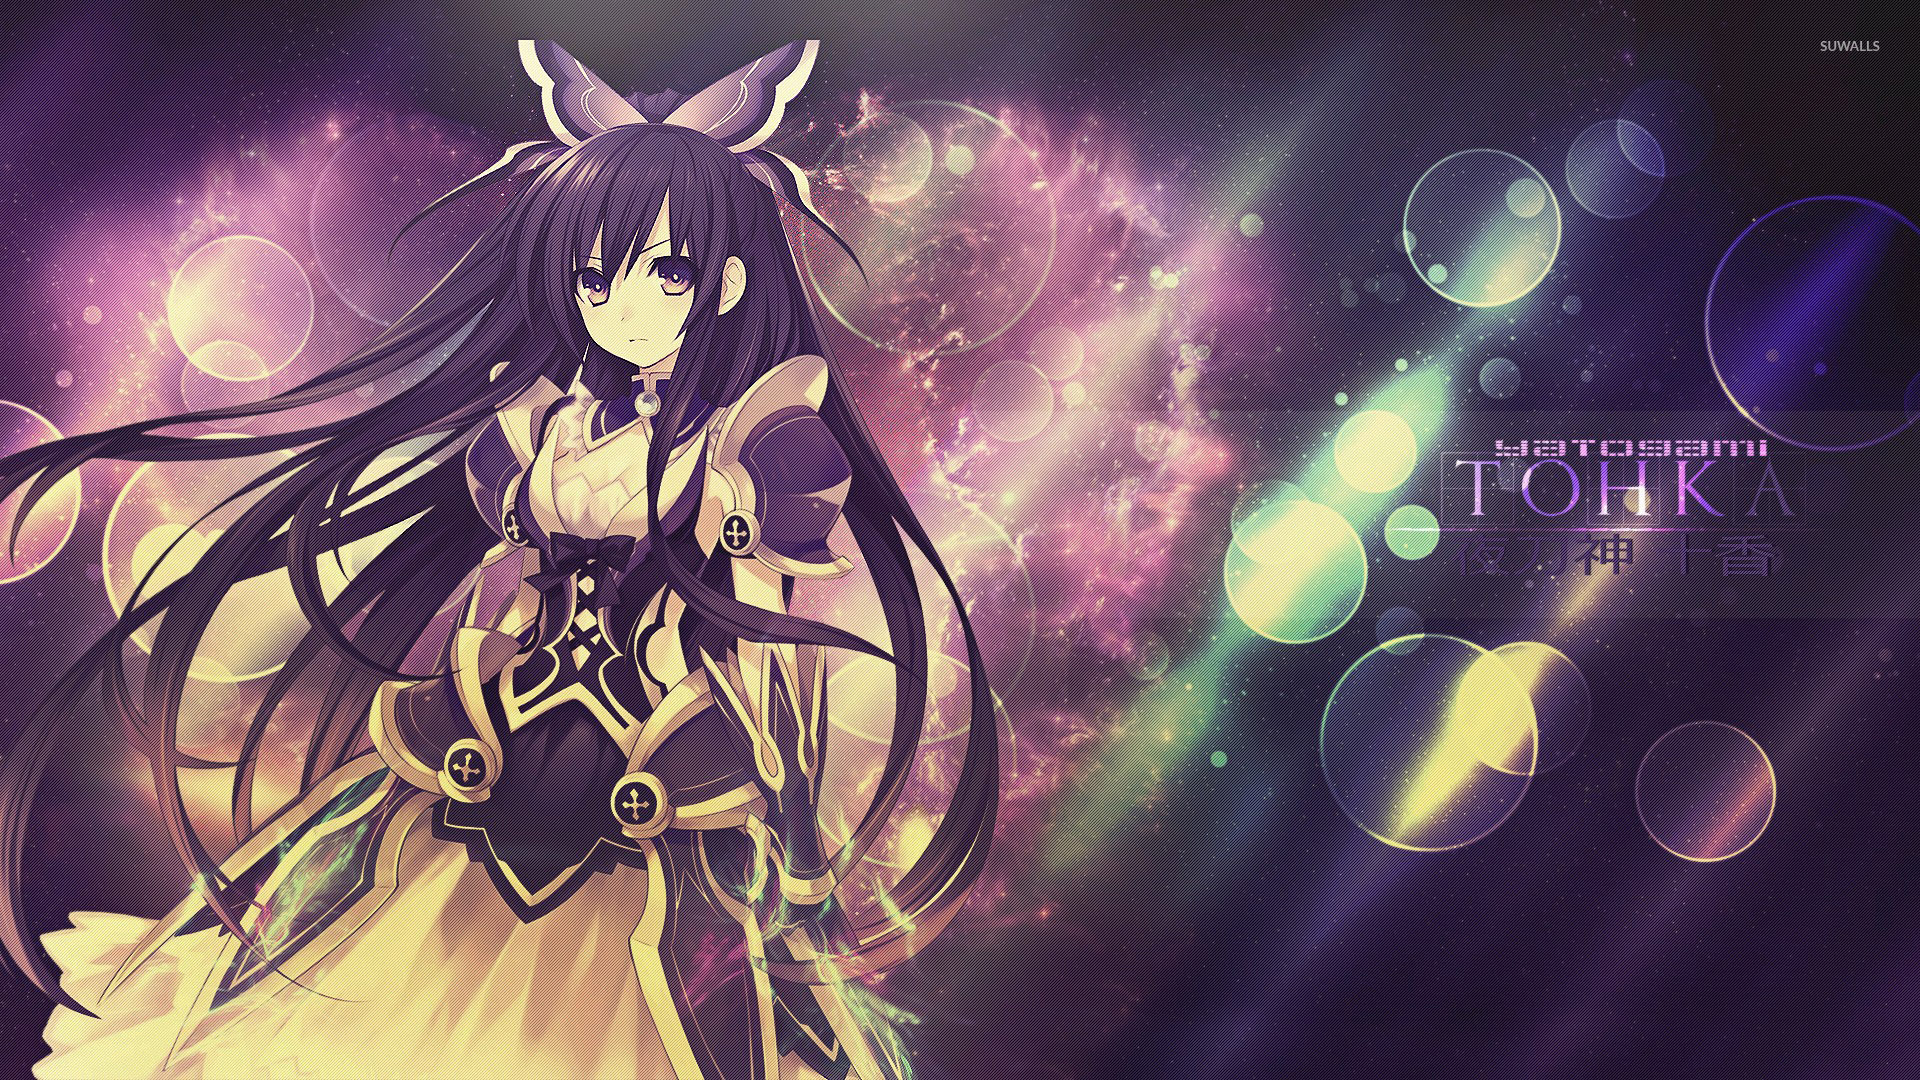 Tohka Yatogami Date A Live wallpaper Anime wallpapers